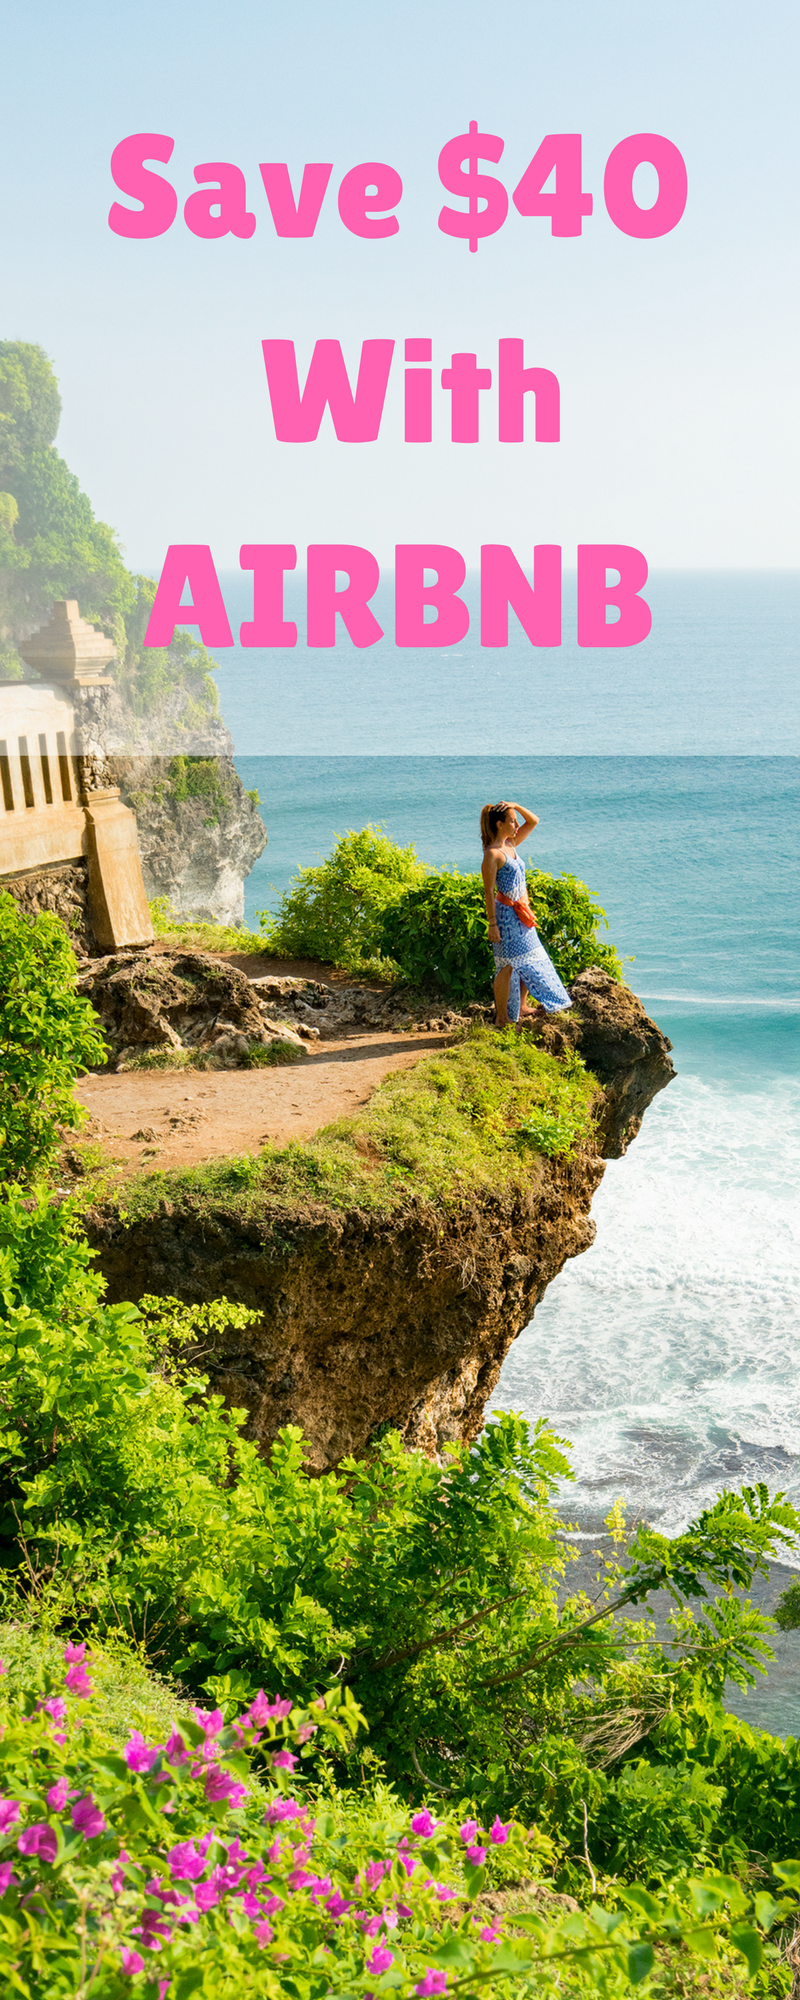 We love discounts and we know budget travelers do too! We will show you how to get $40 off your next AirBnb even if it's not your first booking. Come check out this money saving AirBnb hack and save it to your travel board so you can find it before your next trip. #budgettravel #airbnb